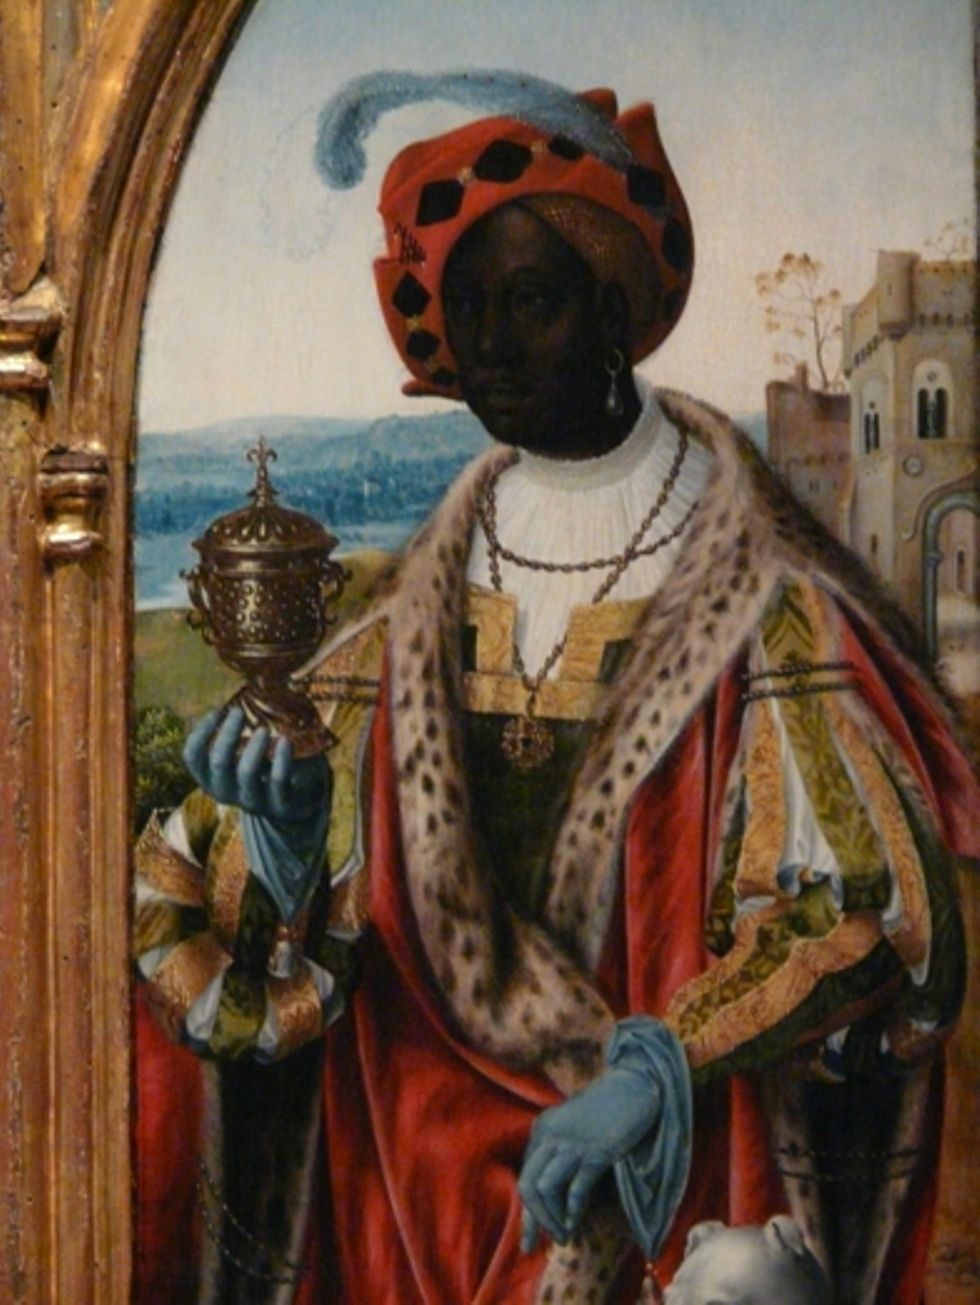 A FLEMISH PAINTING OF THE WISE AFRICAN KING IN THE ...